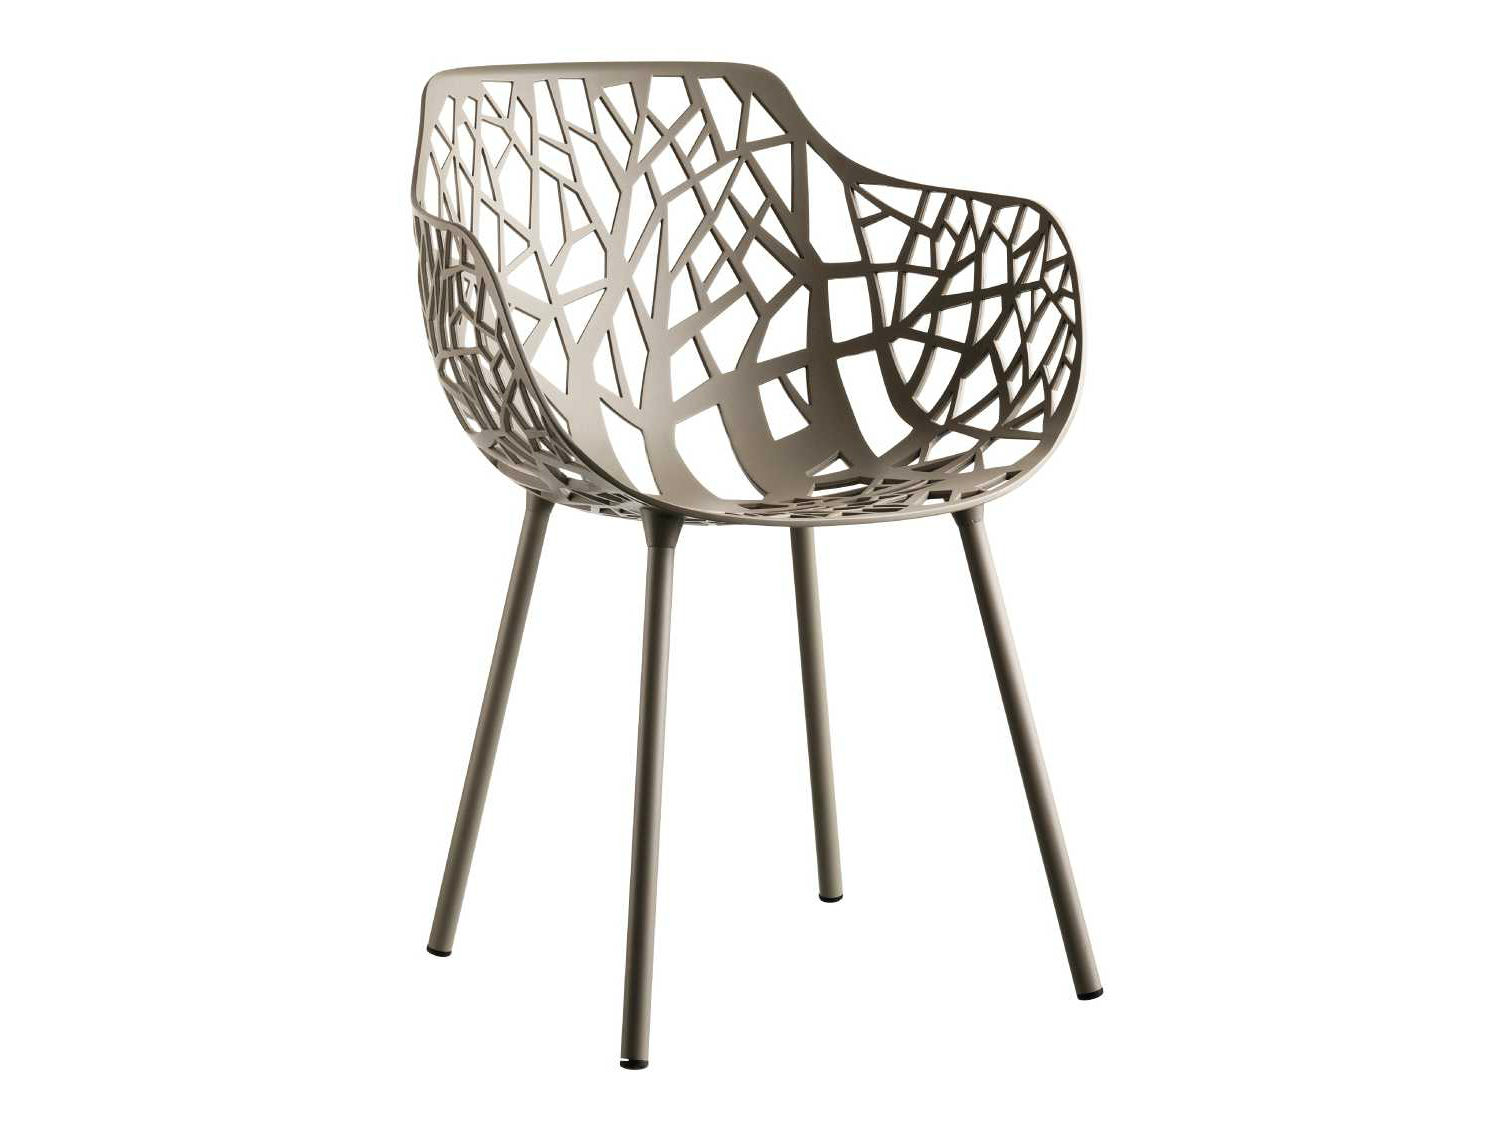 Fast-forest-armchair-stoel-pearly-gold-2-def